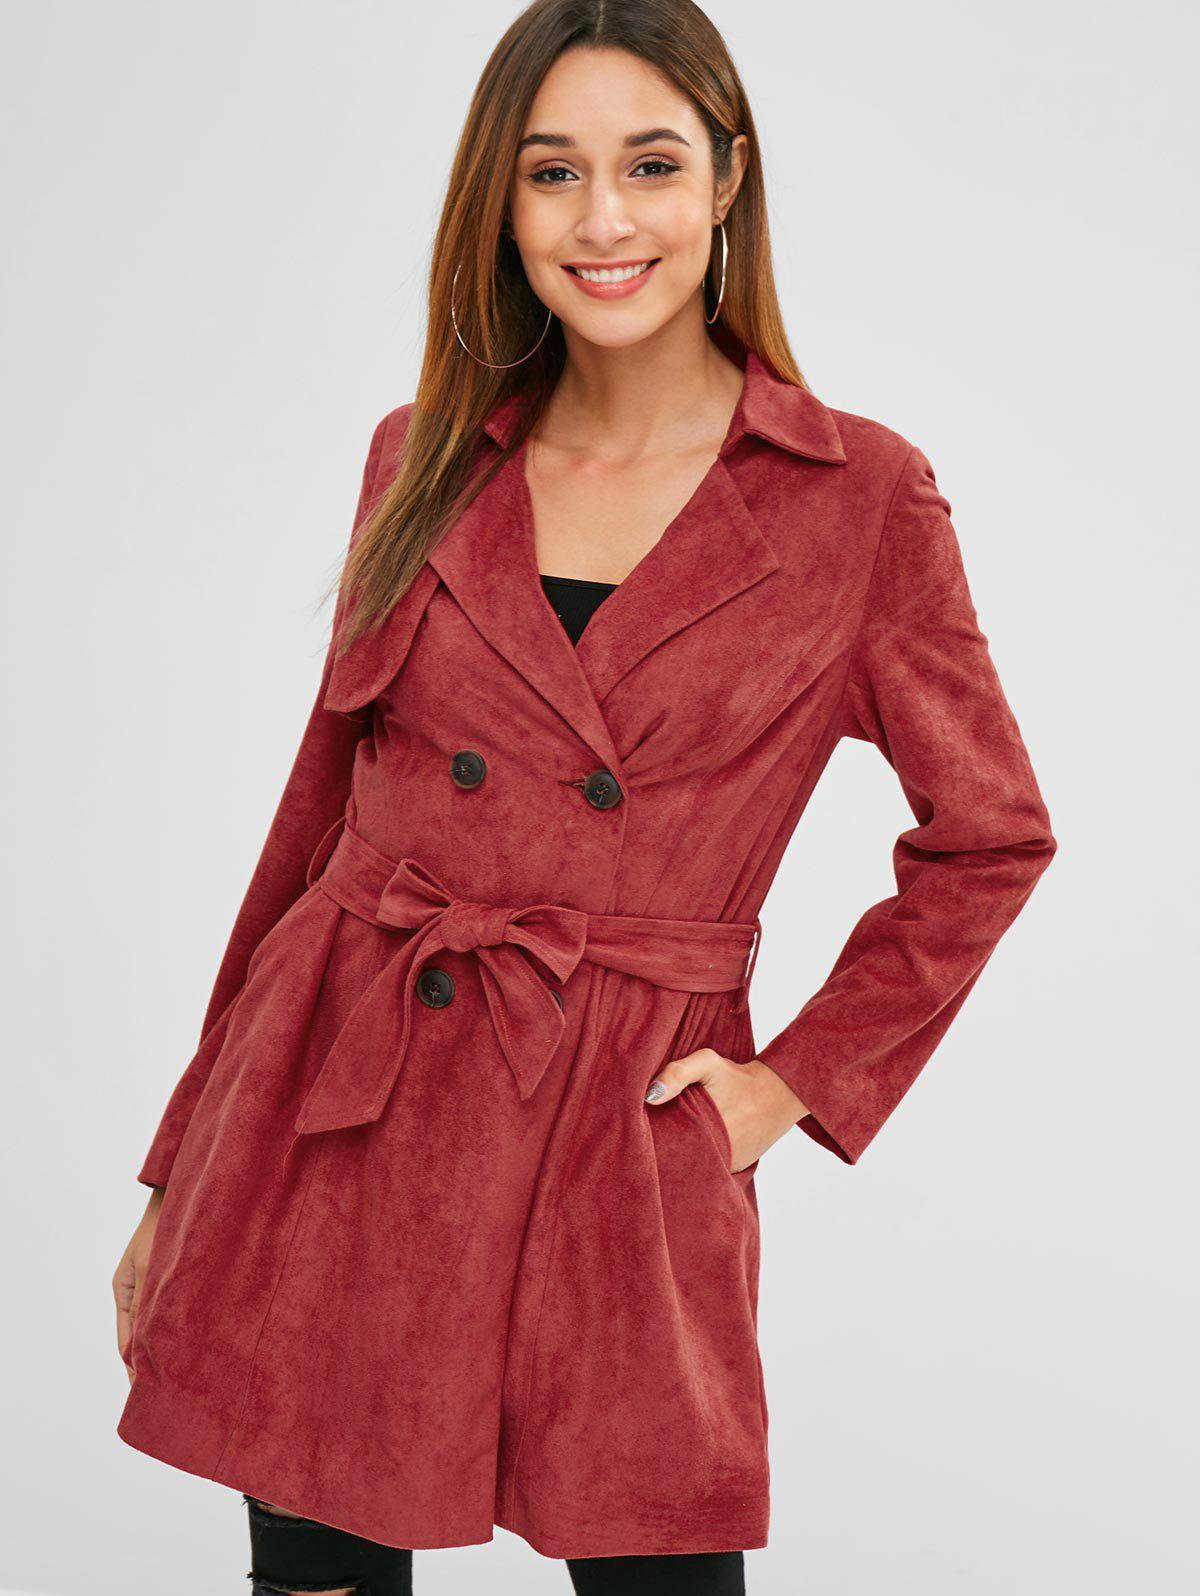 ZAFUL Double Breasted Faux Suede Trench Coat фото